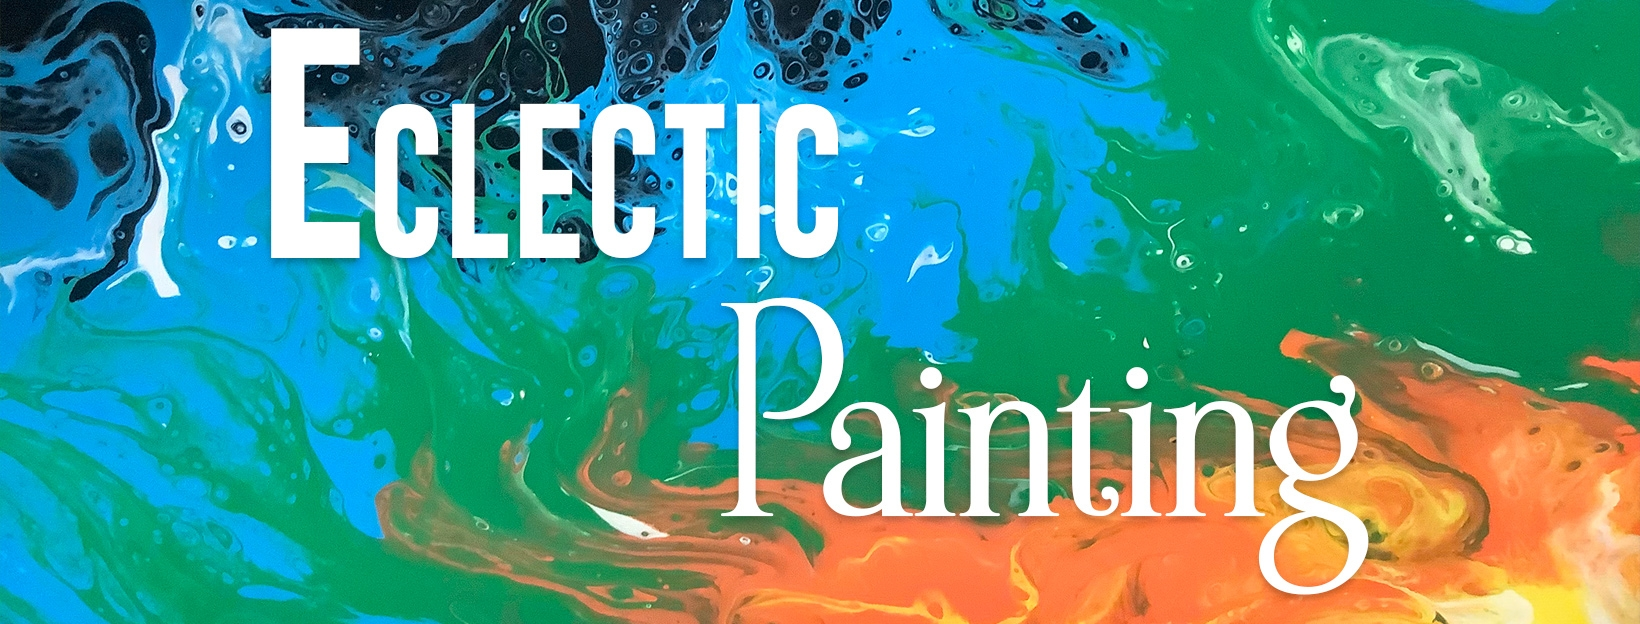 Eclectic Painting